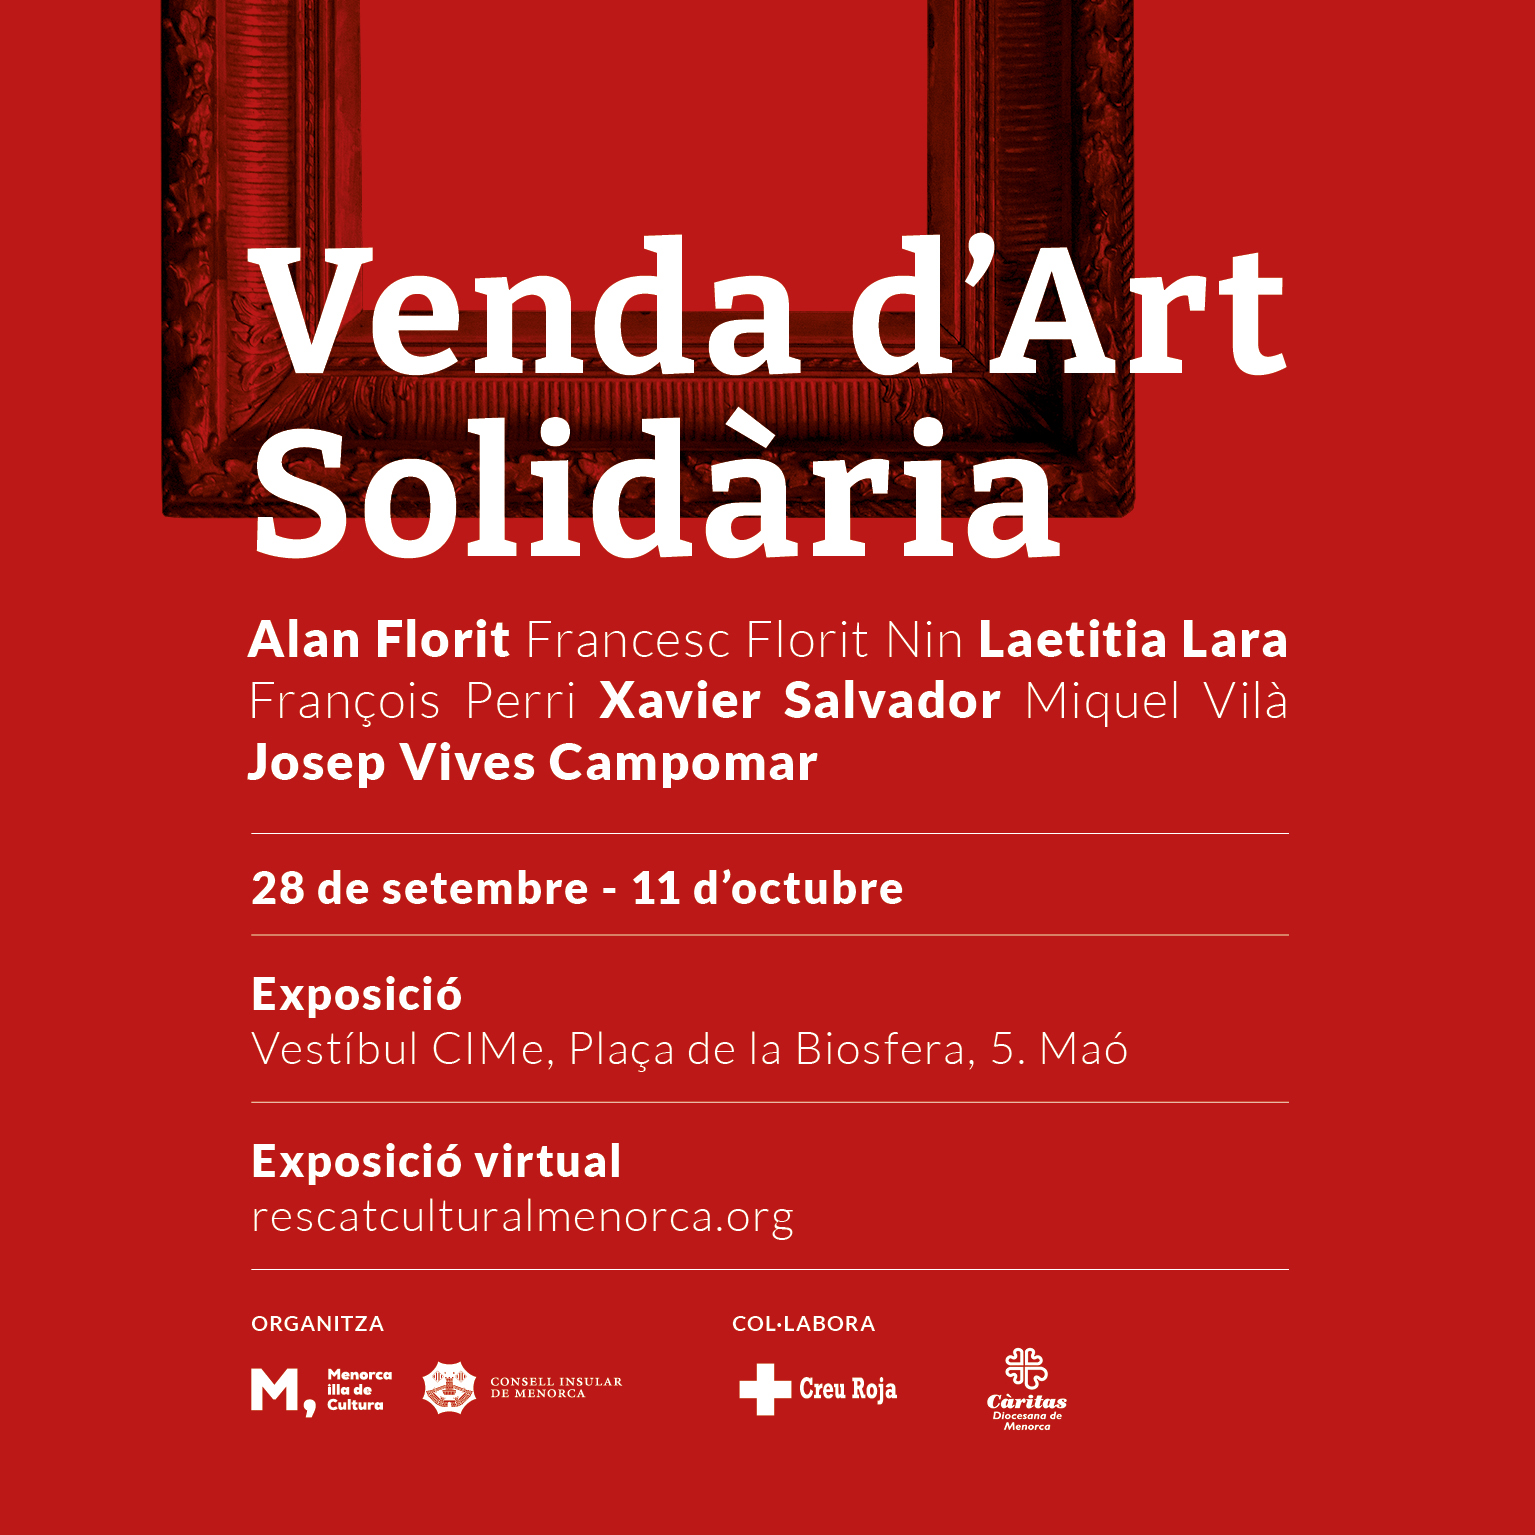 VENDA D'ART SOLIDARIA